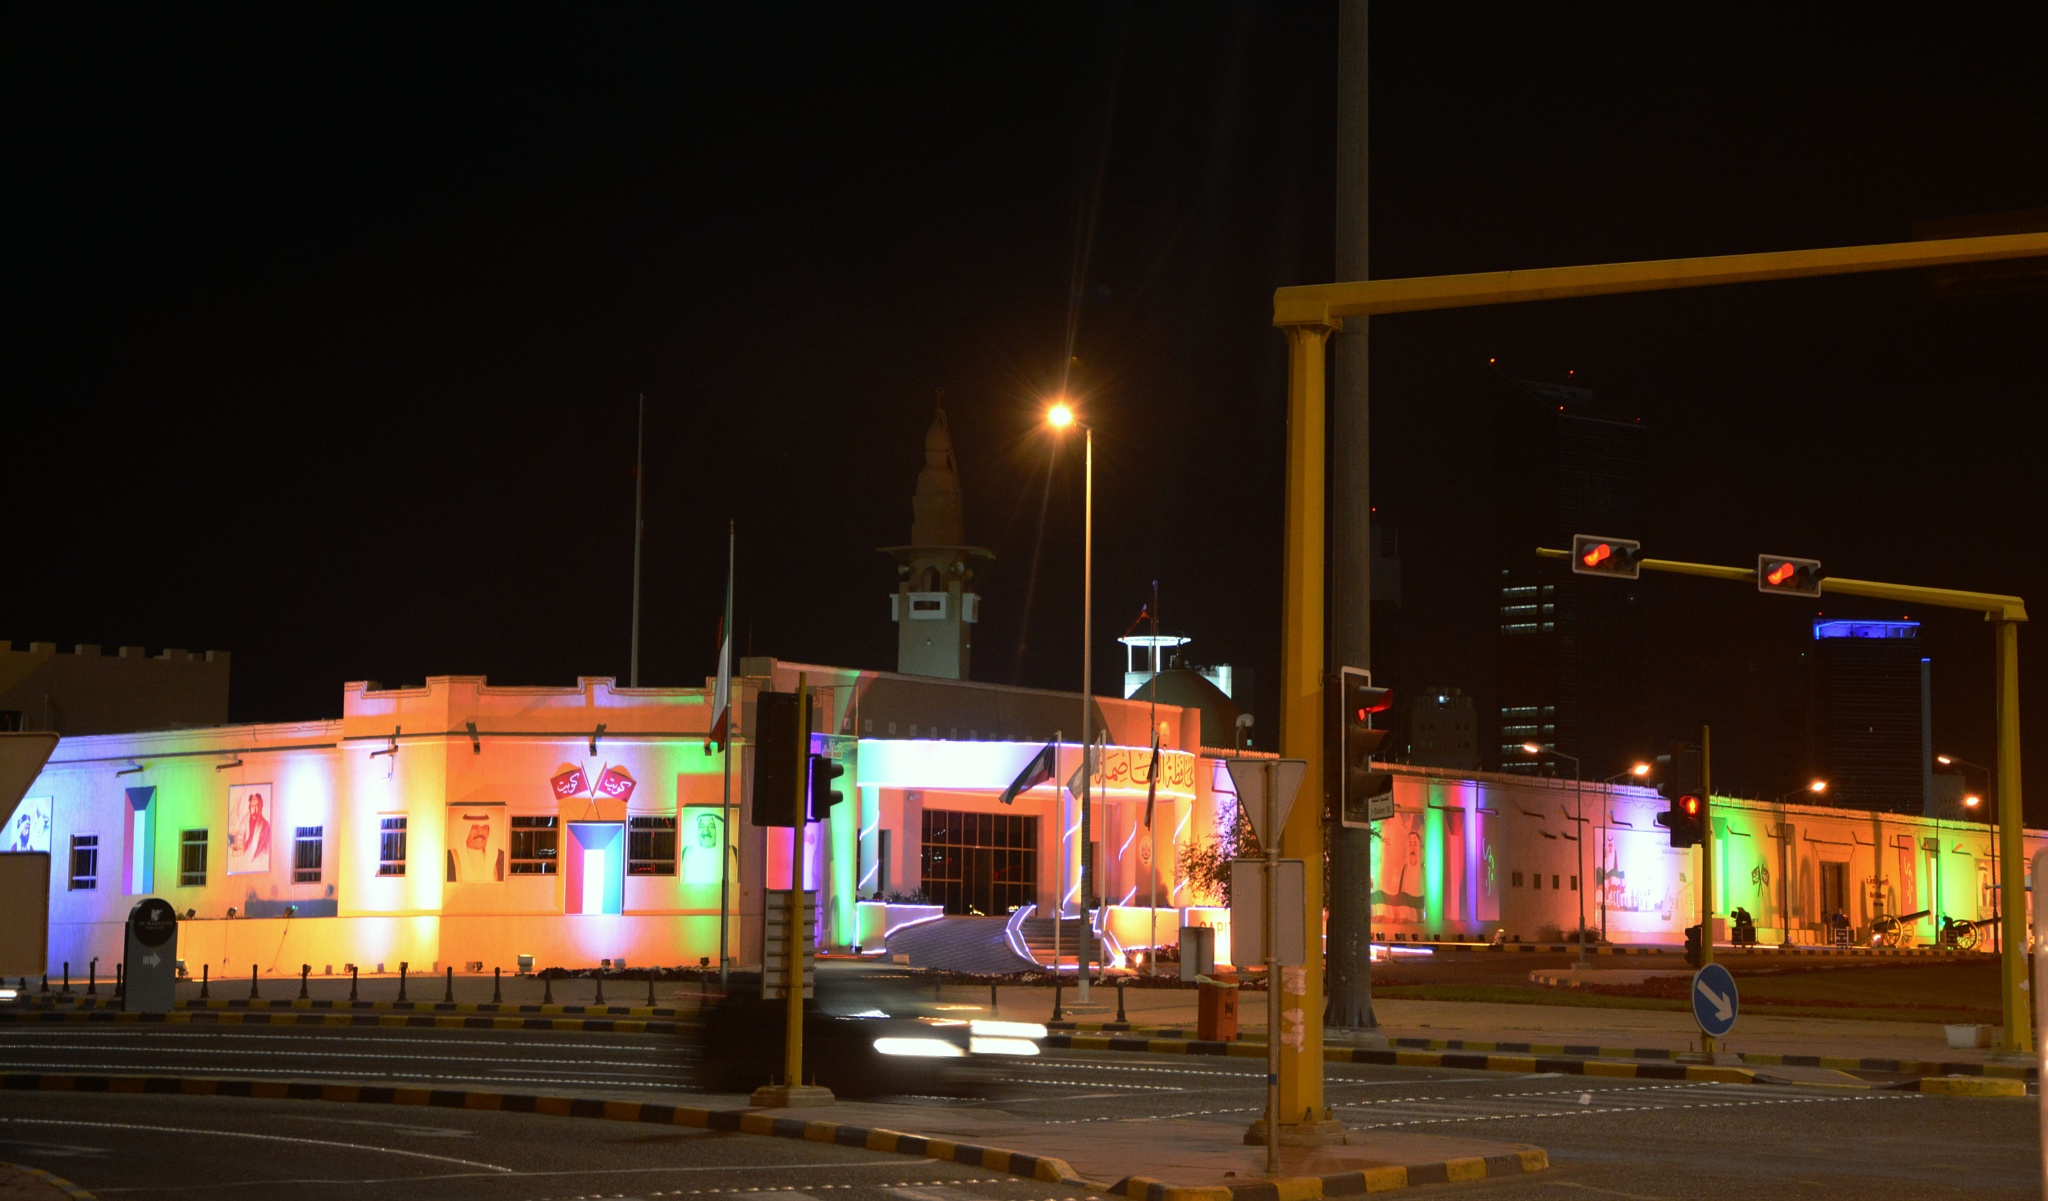 National day of Kuwait by M.S.Sabir